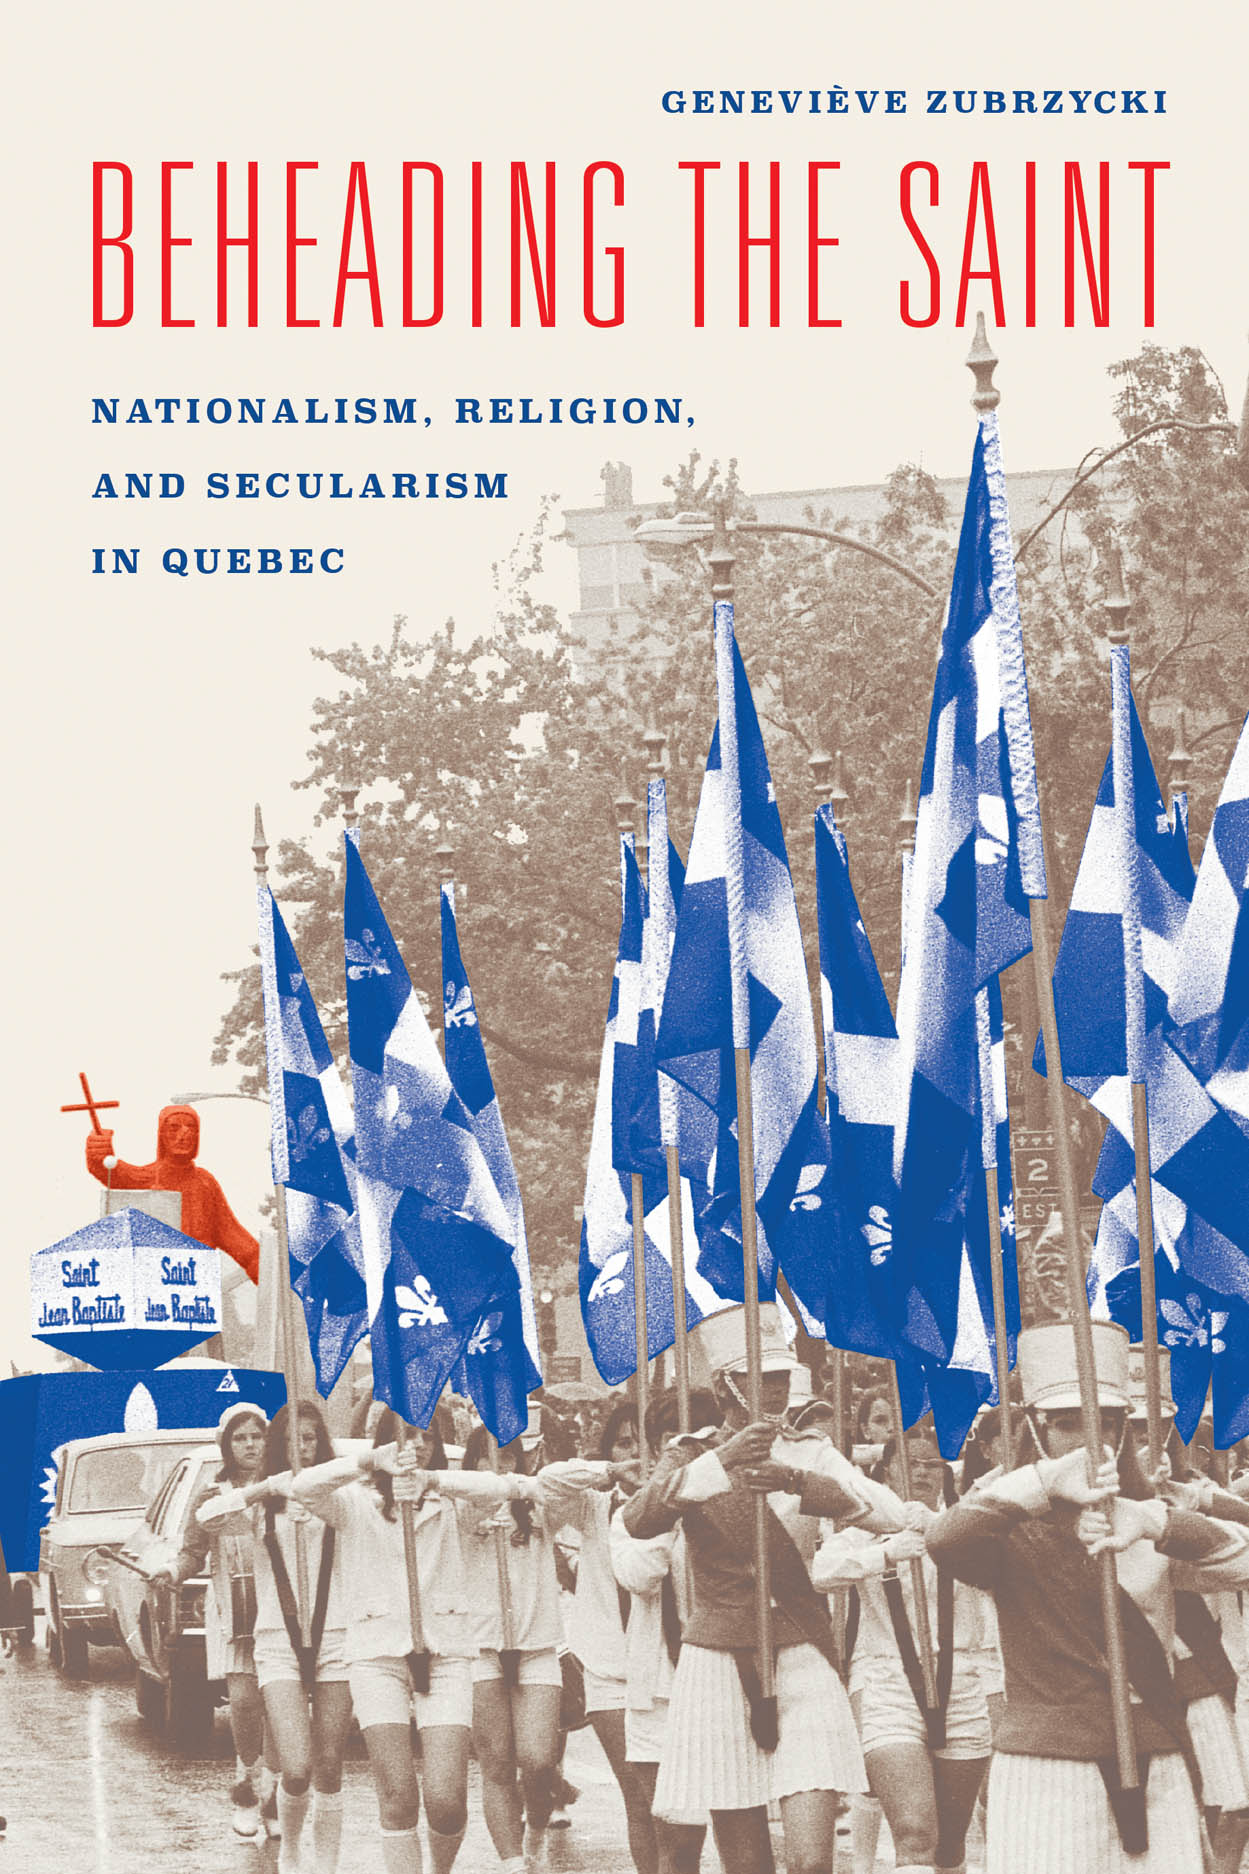 Beheading the Saint: Nationalism, Religion, and Secularism in Quebec